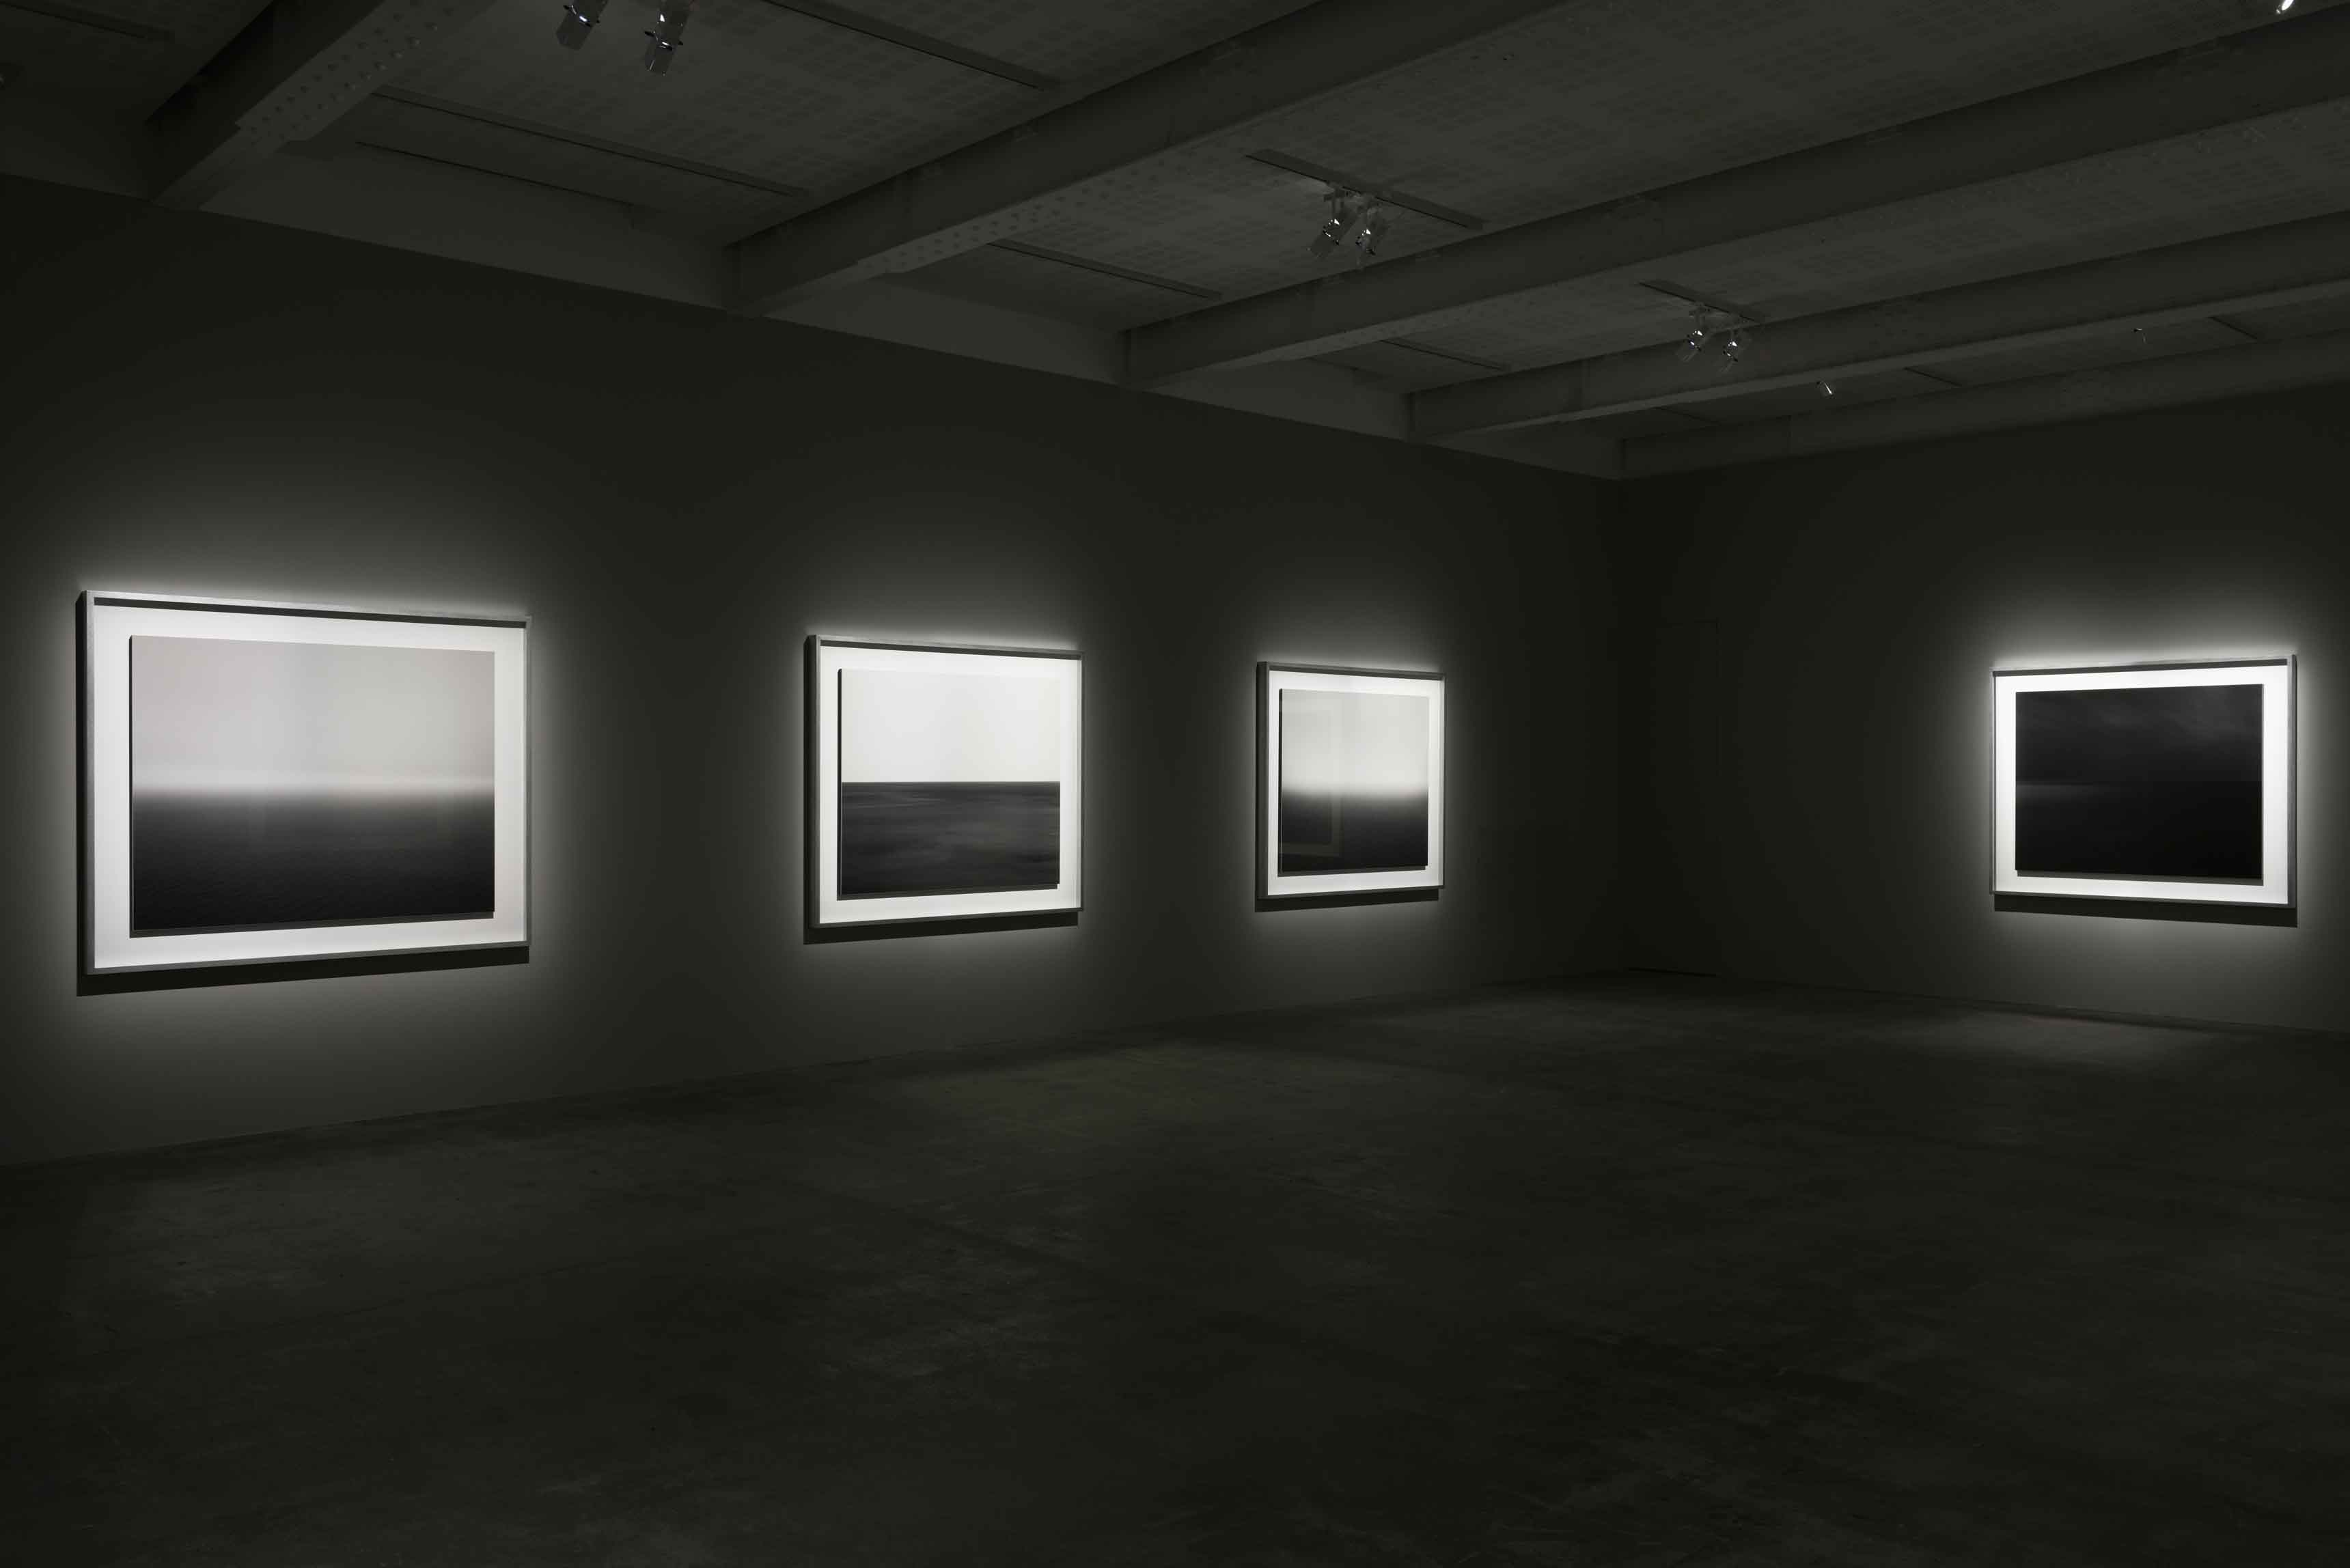 Hiroshi Sugimoto, Surface Tension, vue d'exposition